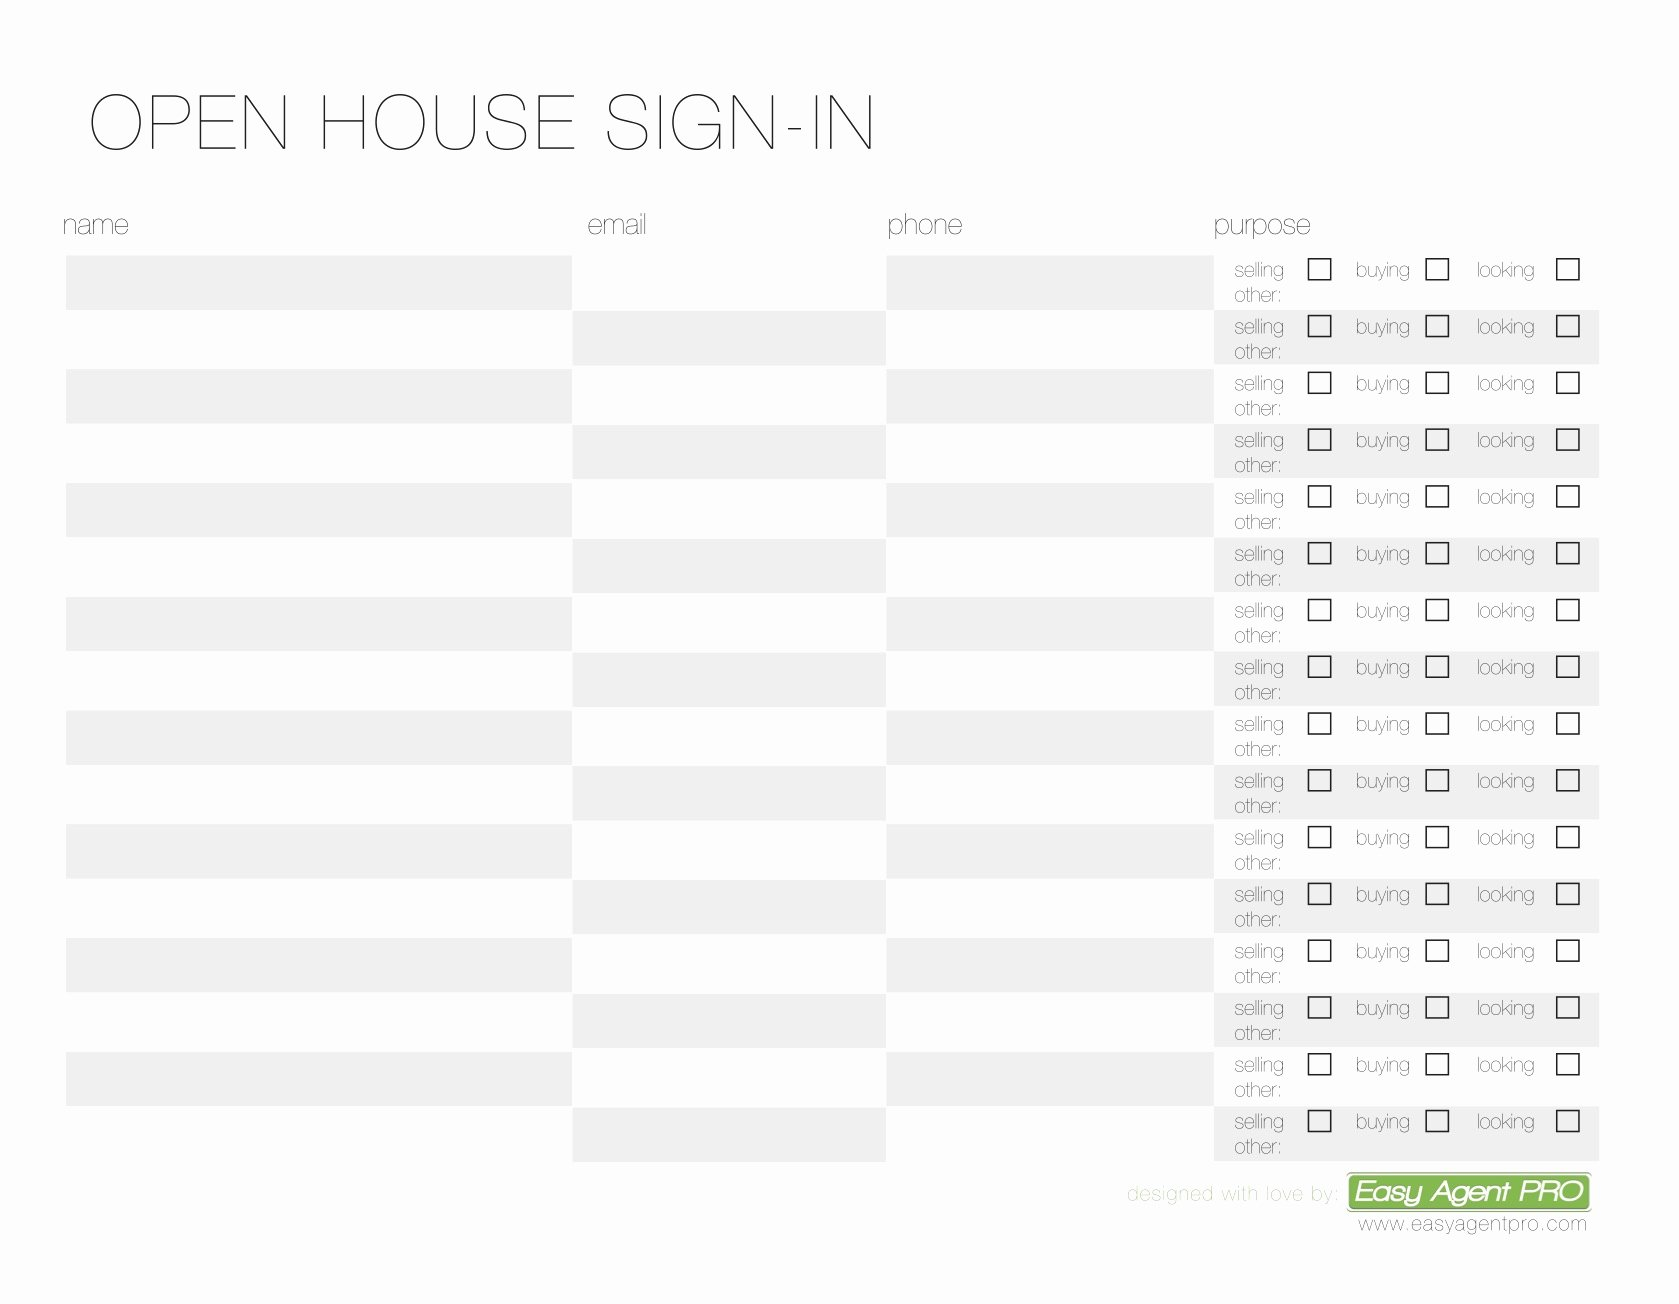 Open House Sign In Template Best Of Open House Sign In Sheet Printable Templates Free & Ready